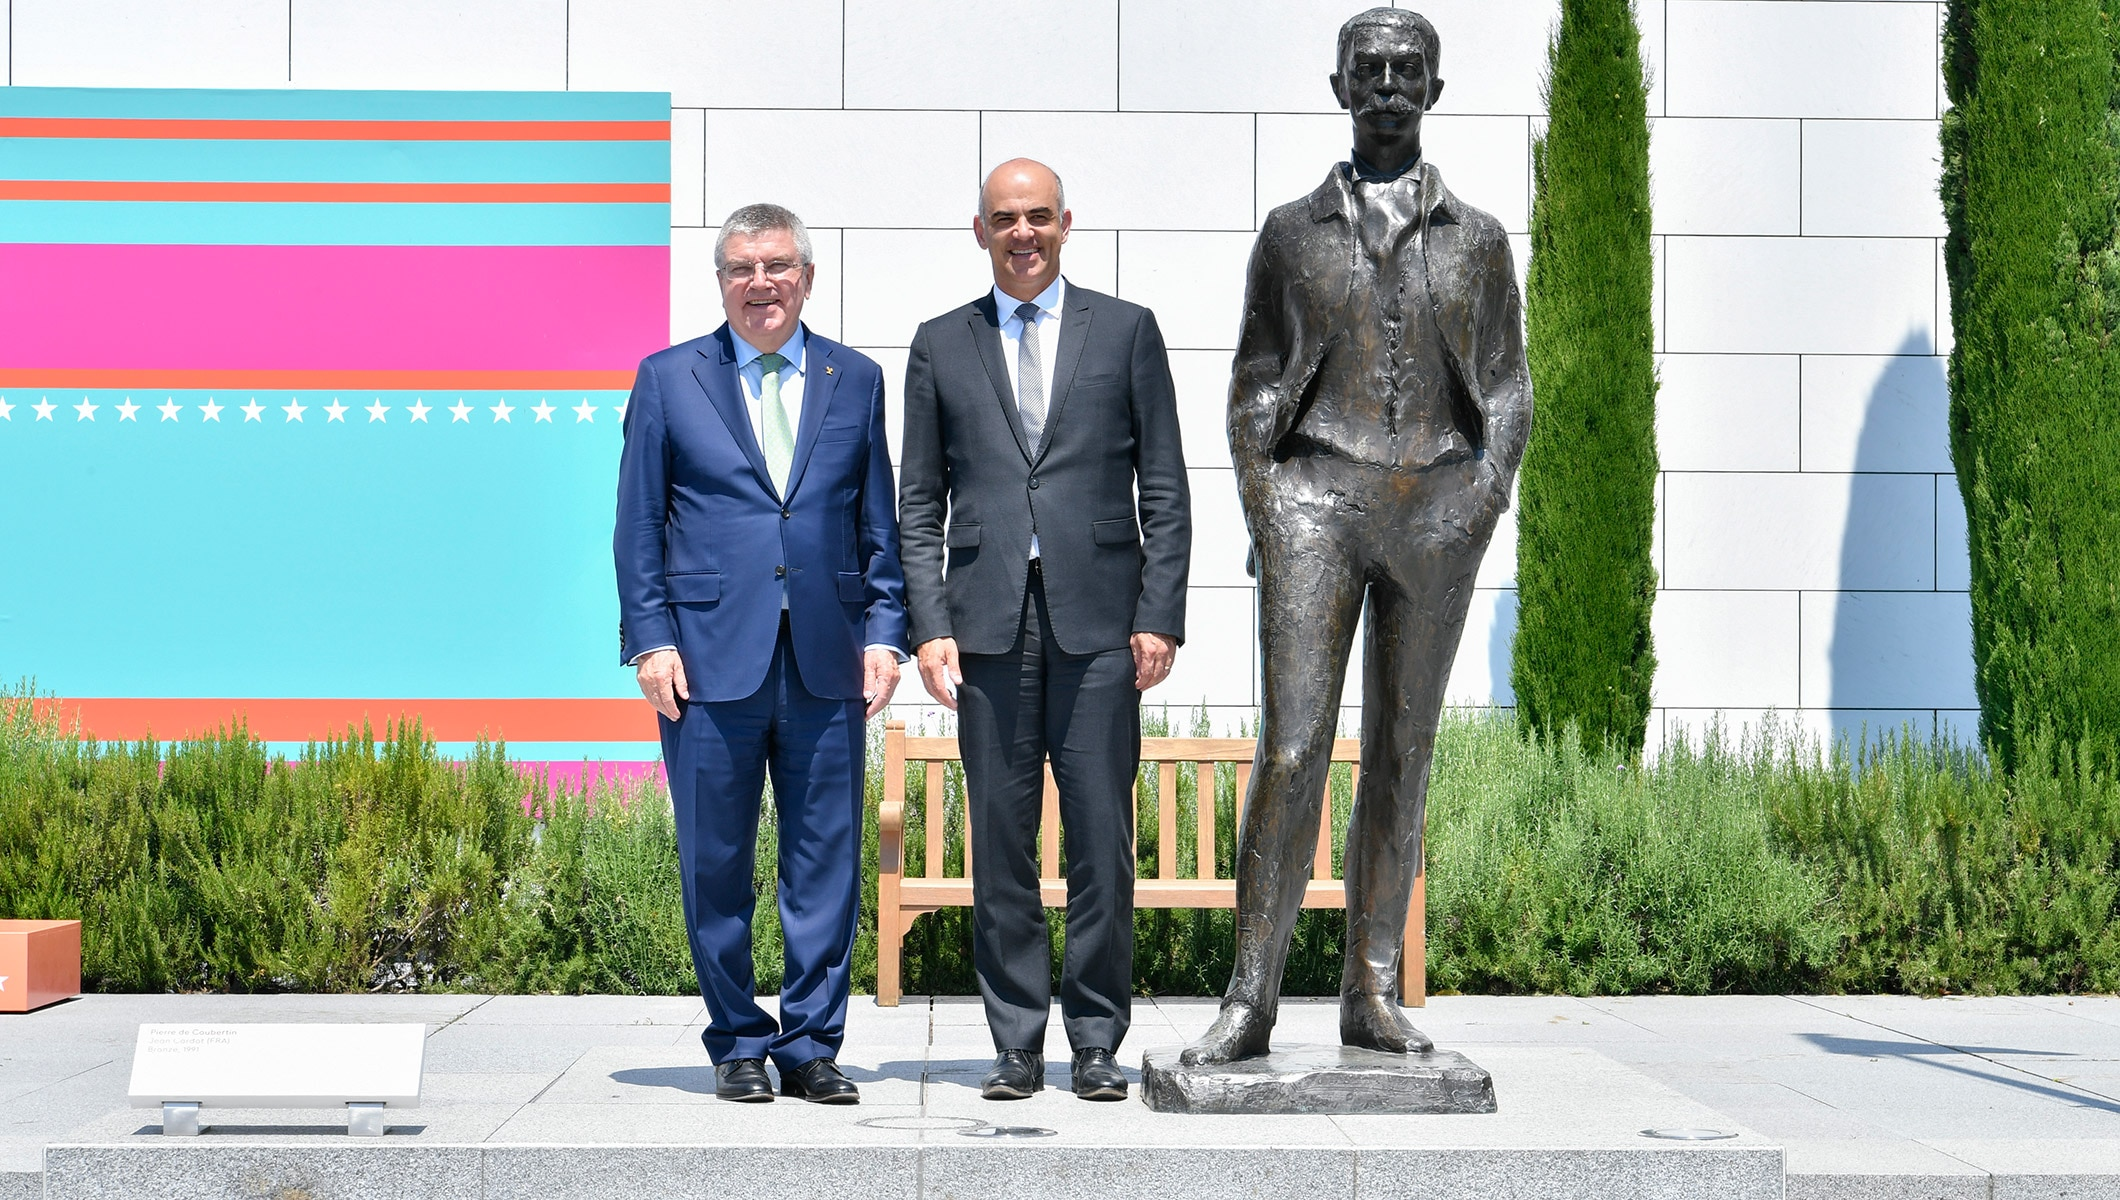 IOC President Thomas Bach and the President of the Swiss Confederation, Alain Berset